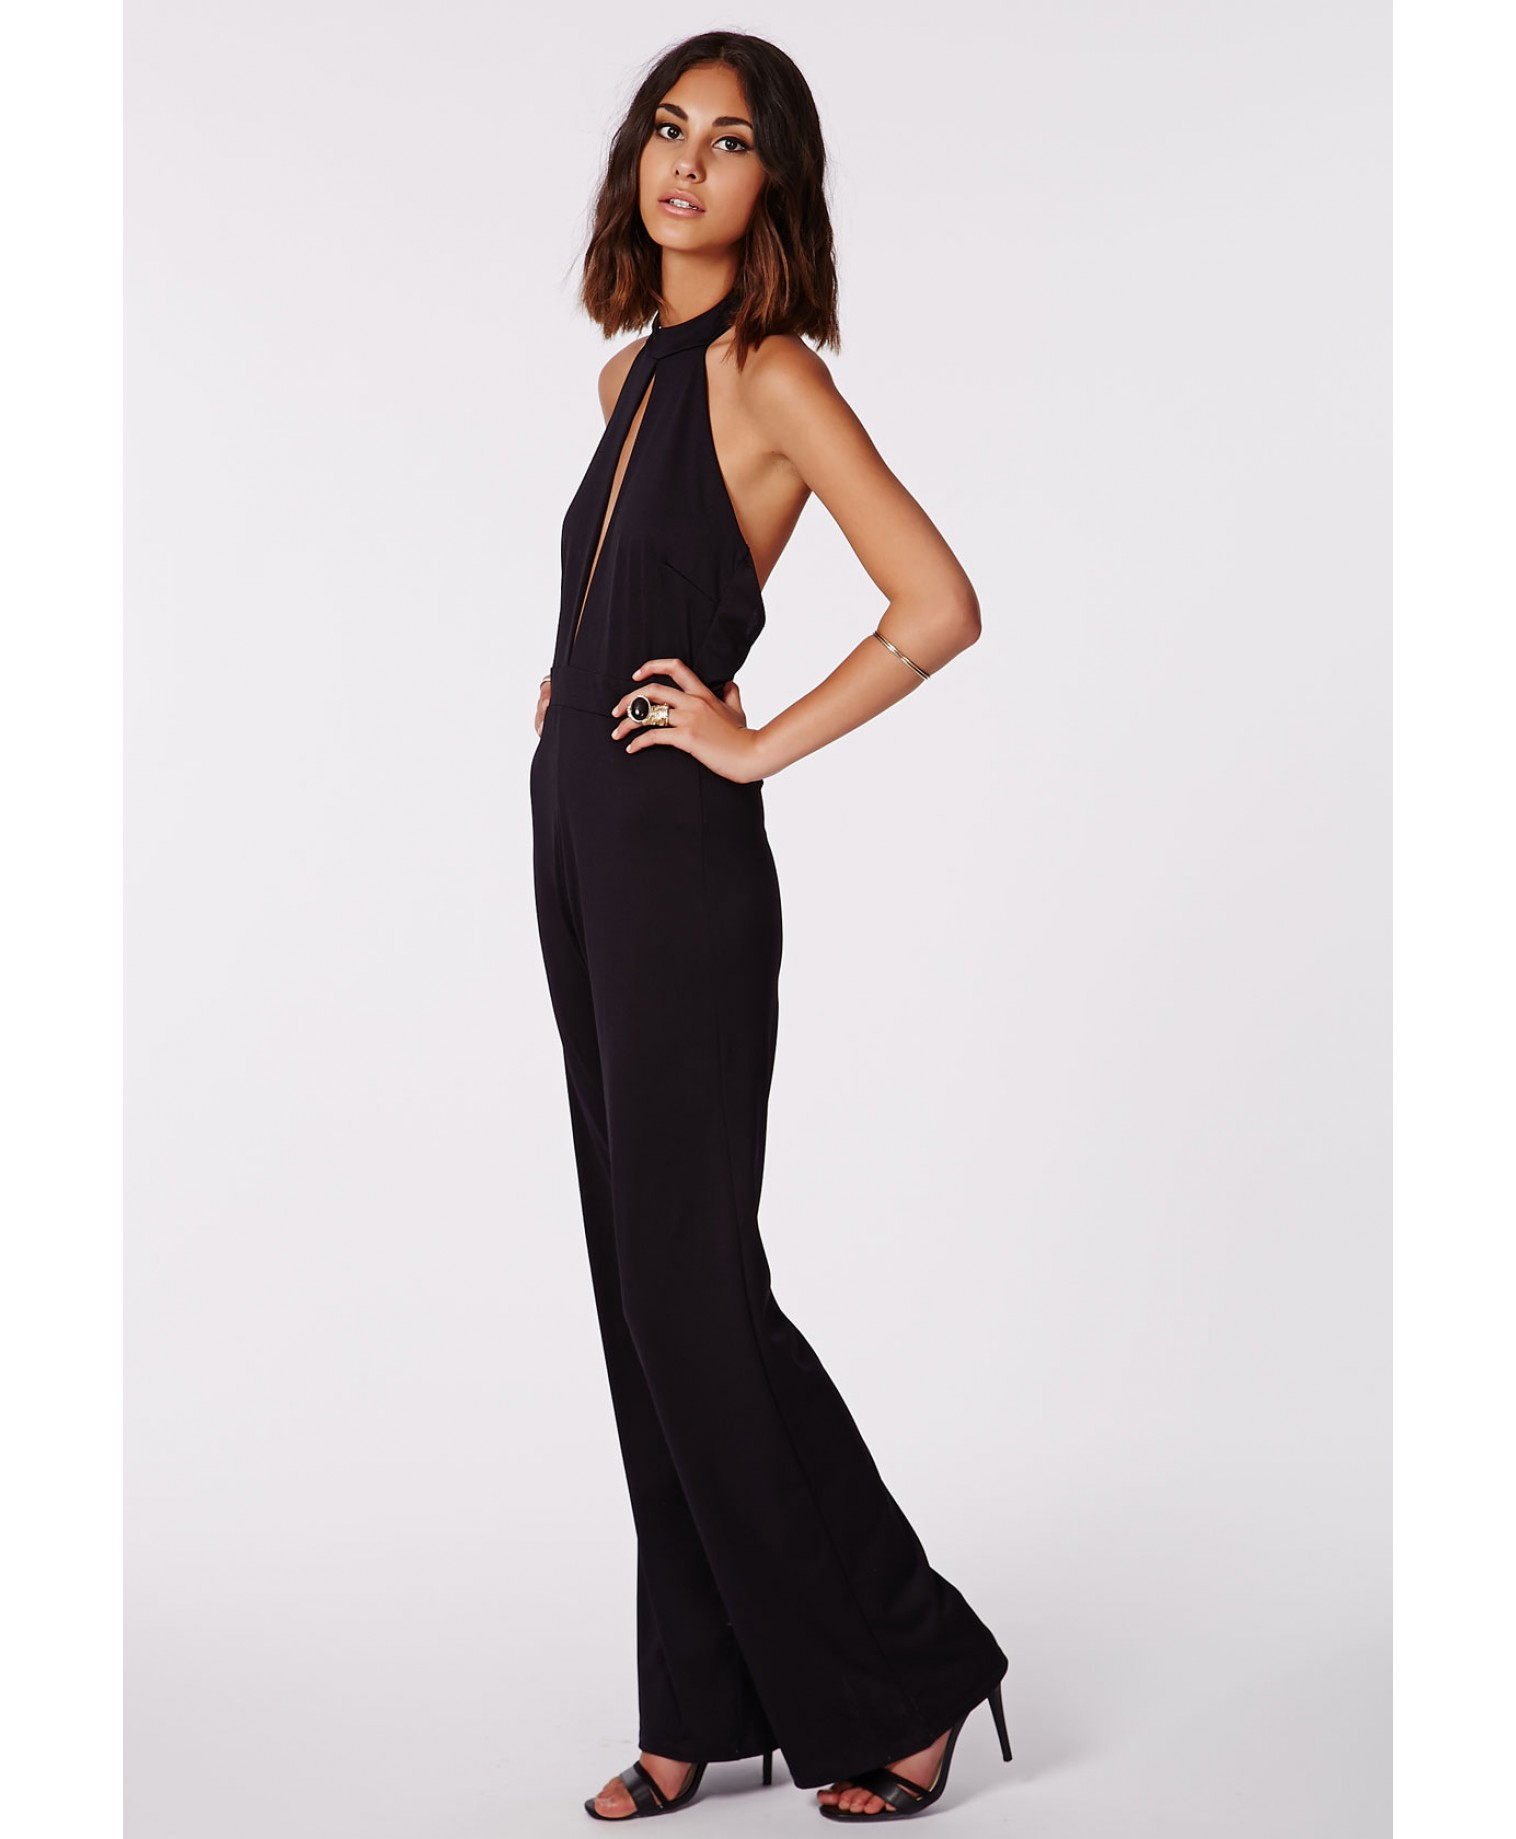 7a56a8e4adf Missguided Milka Black Halterneck Keyhole Jumpsuit in Black - Lyst